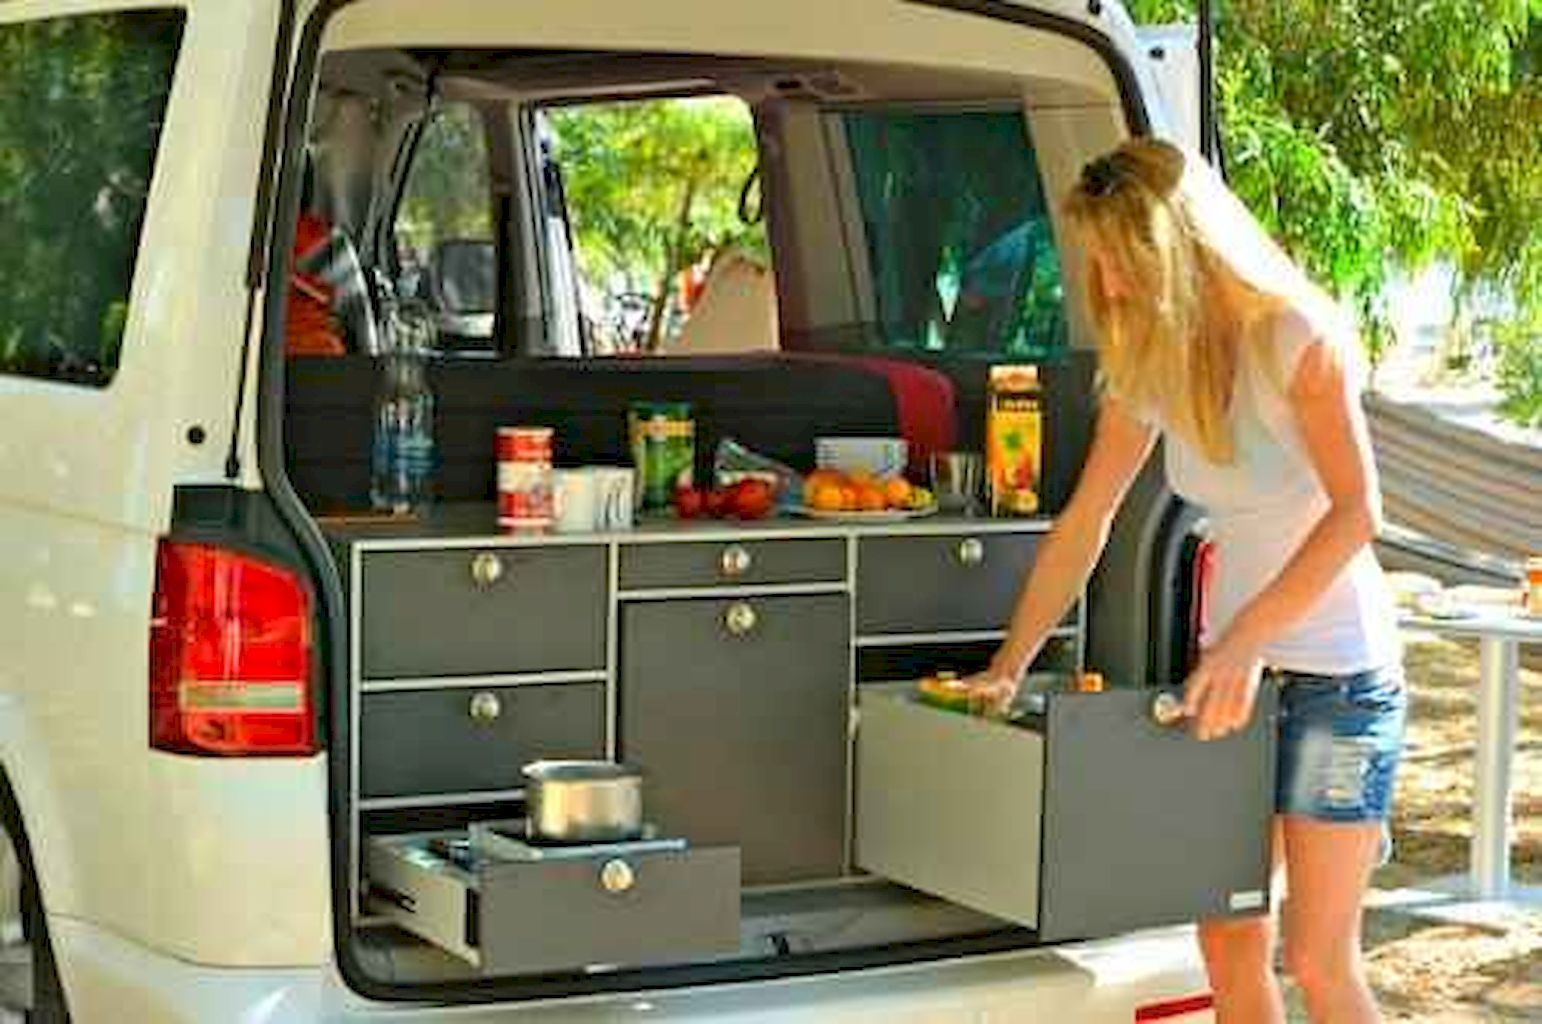 Awesome 45 Comfy RVs Camper Van Conversion Ideas On A Budget Homeastern